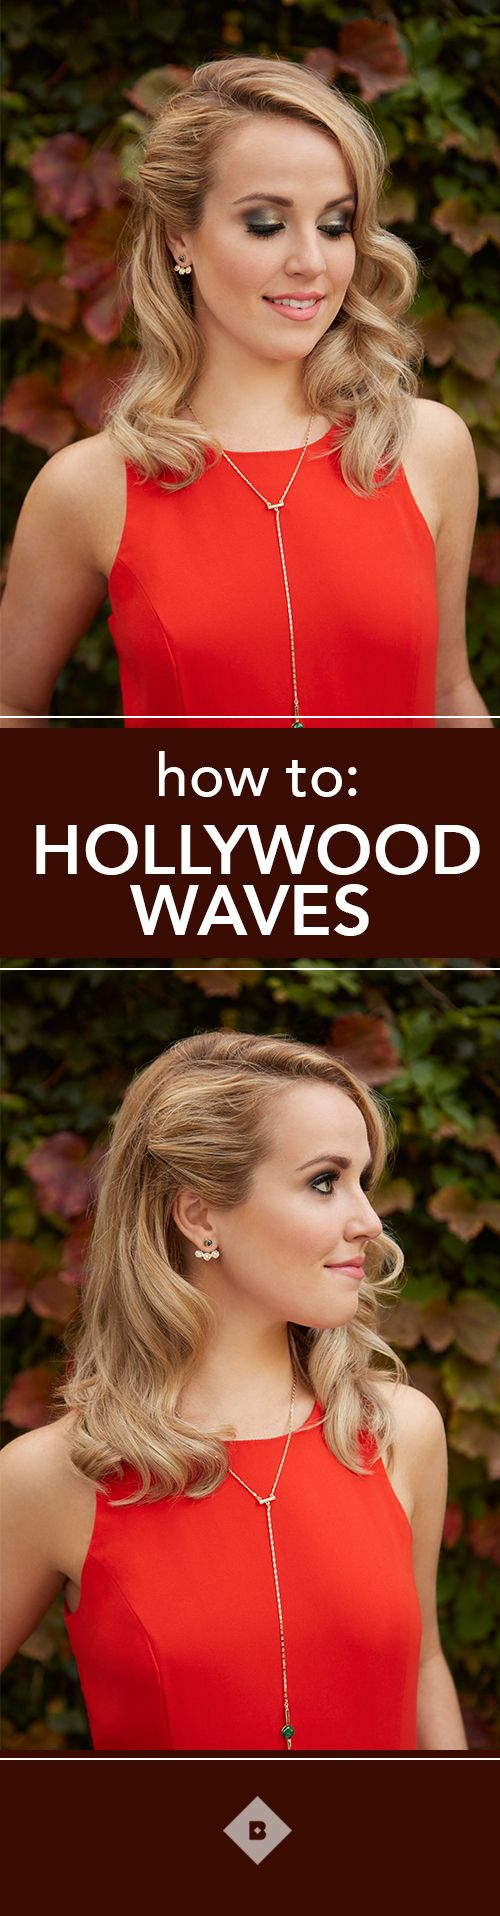 Glamorous Hollywood waves look just as good at your holiday parties as they do o...